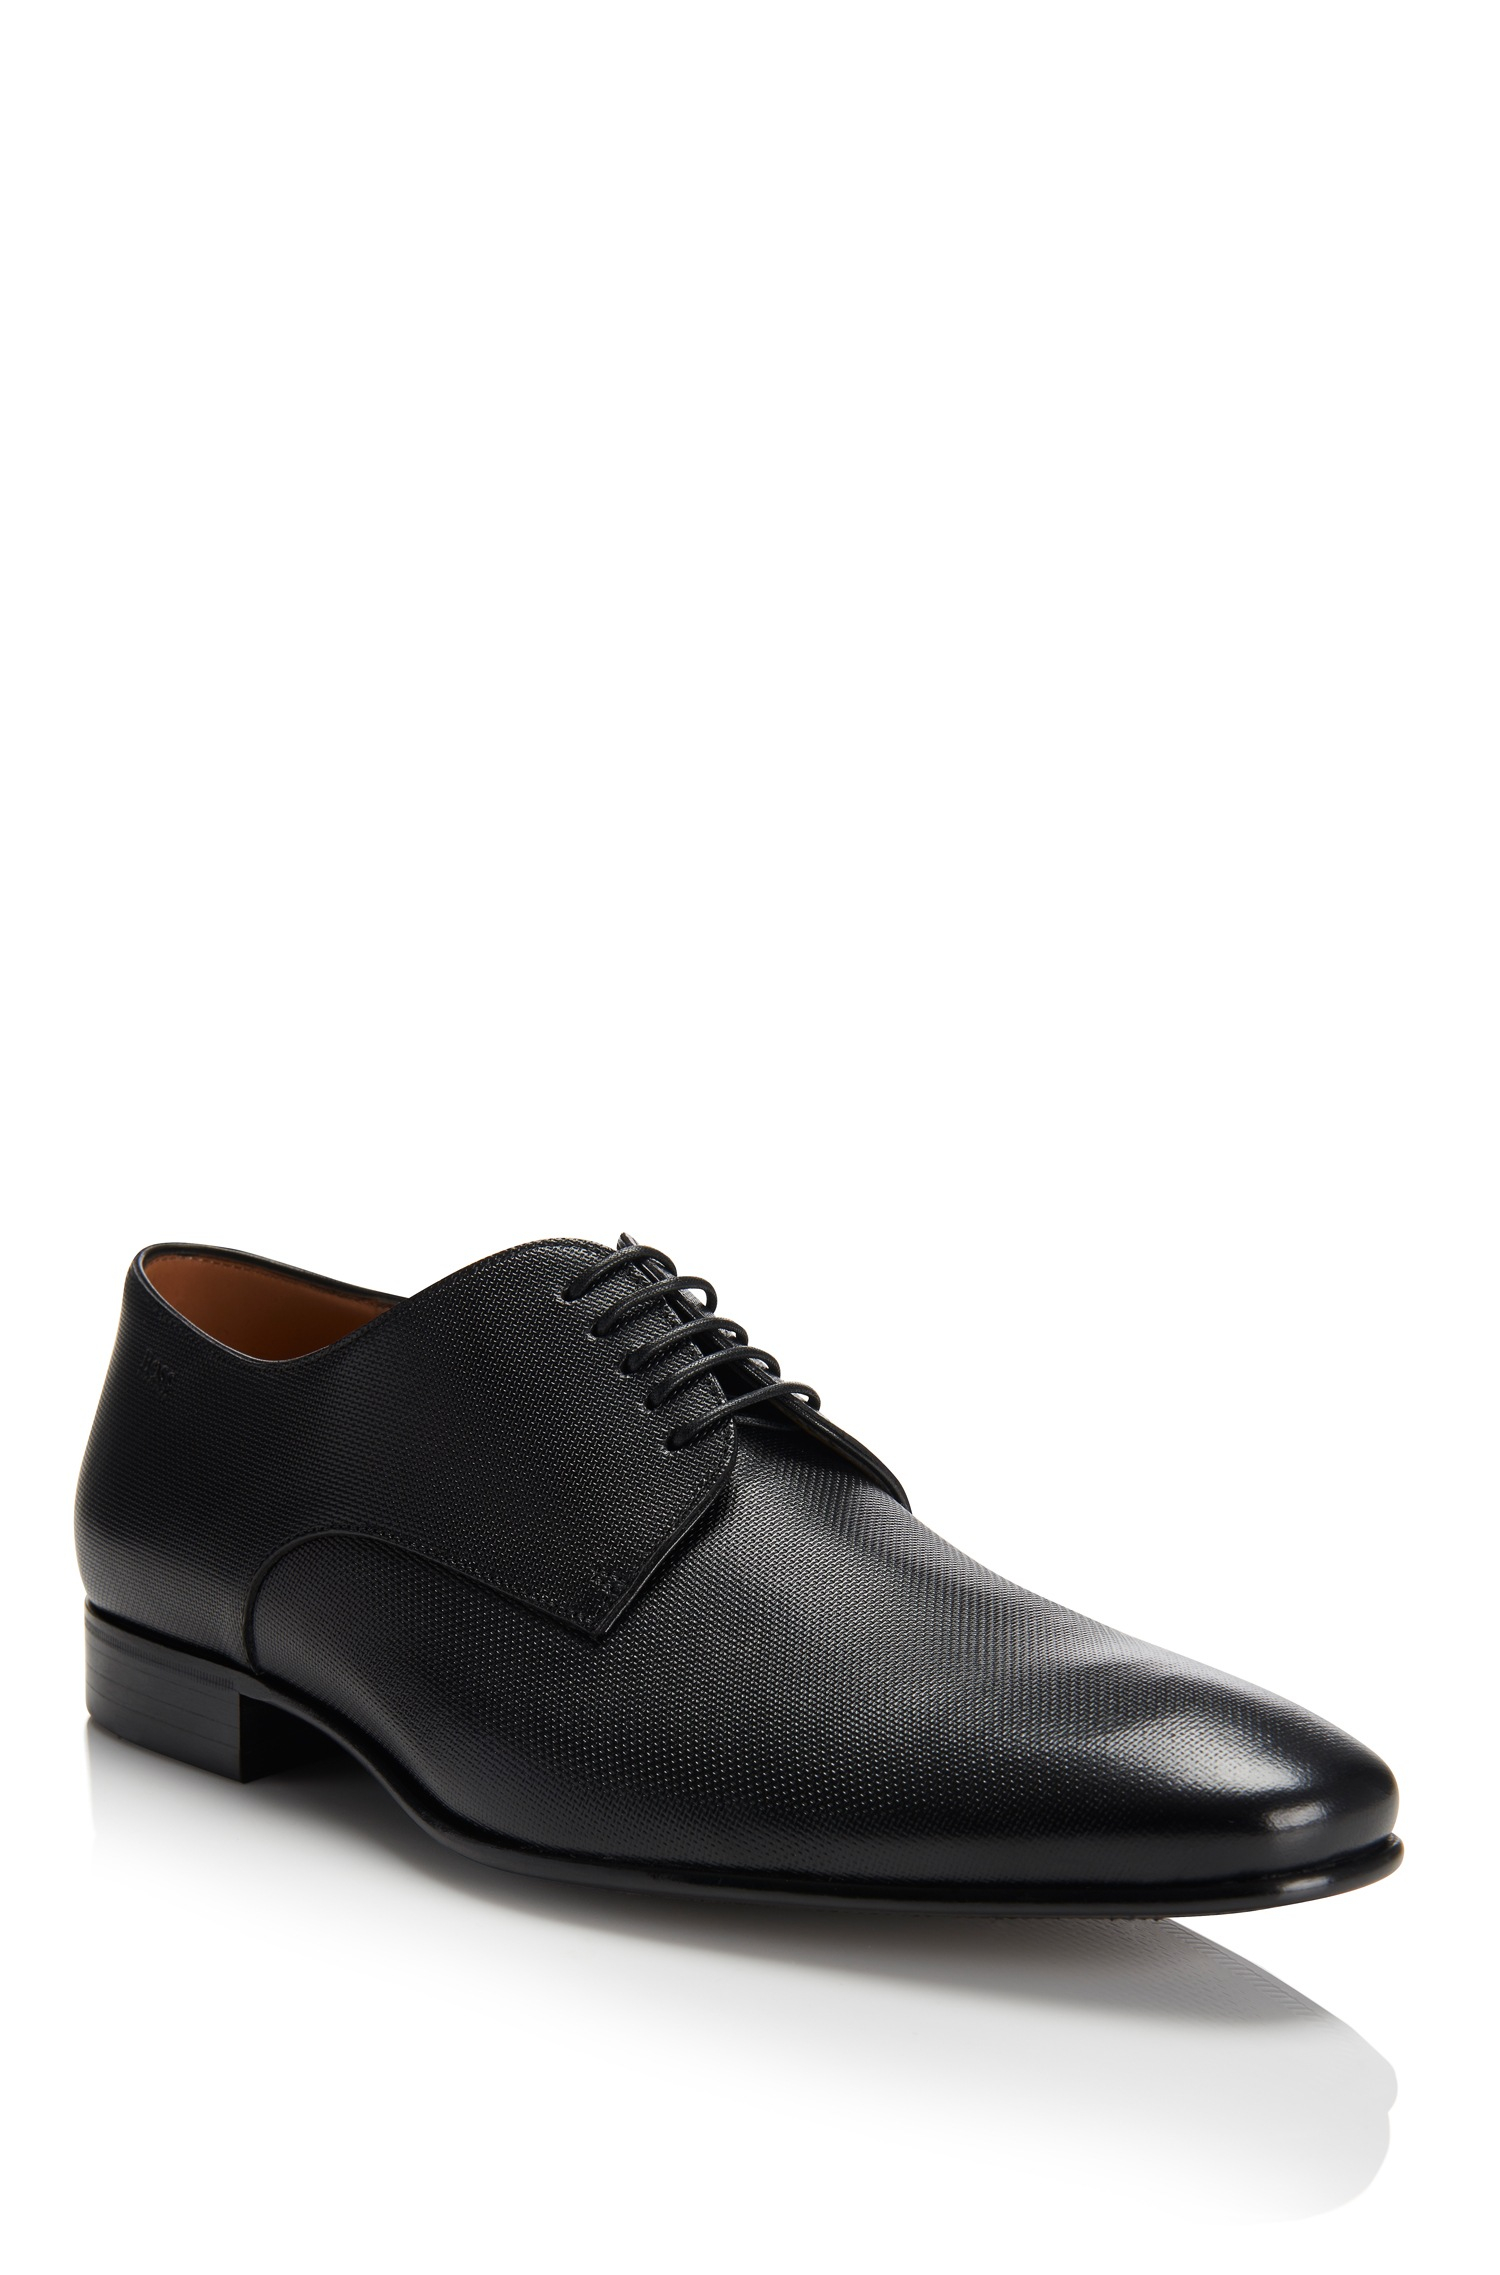 prindo italian leather dress shoes in black for